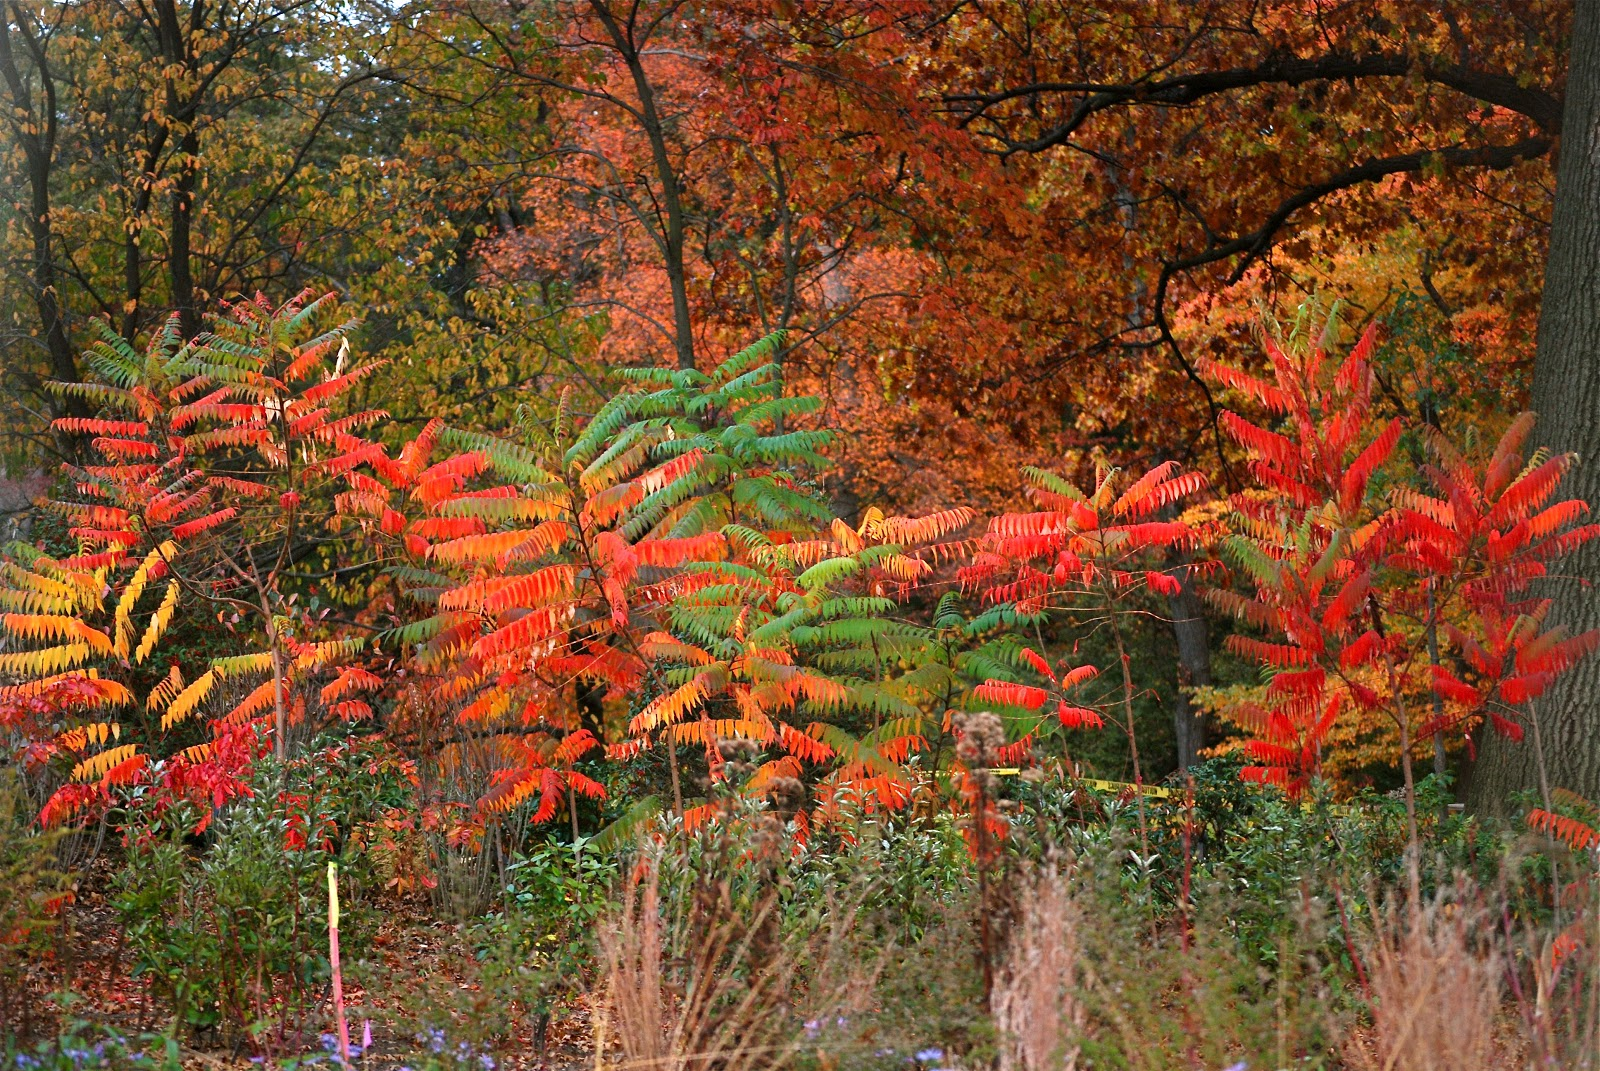 NYC ♥ NYC: Autumn Foliage at the New York Botanical Garden